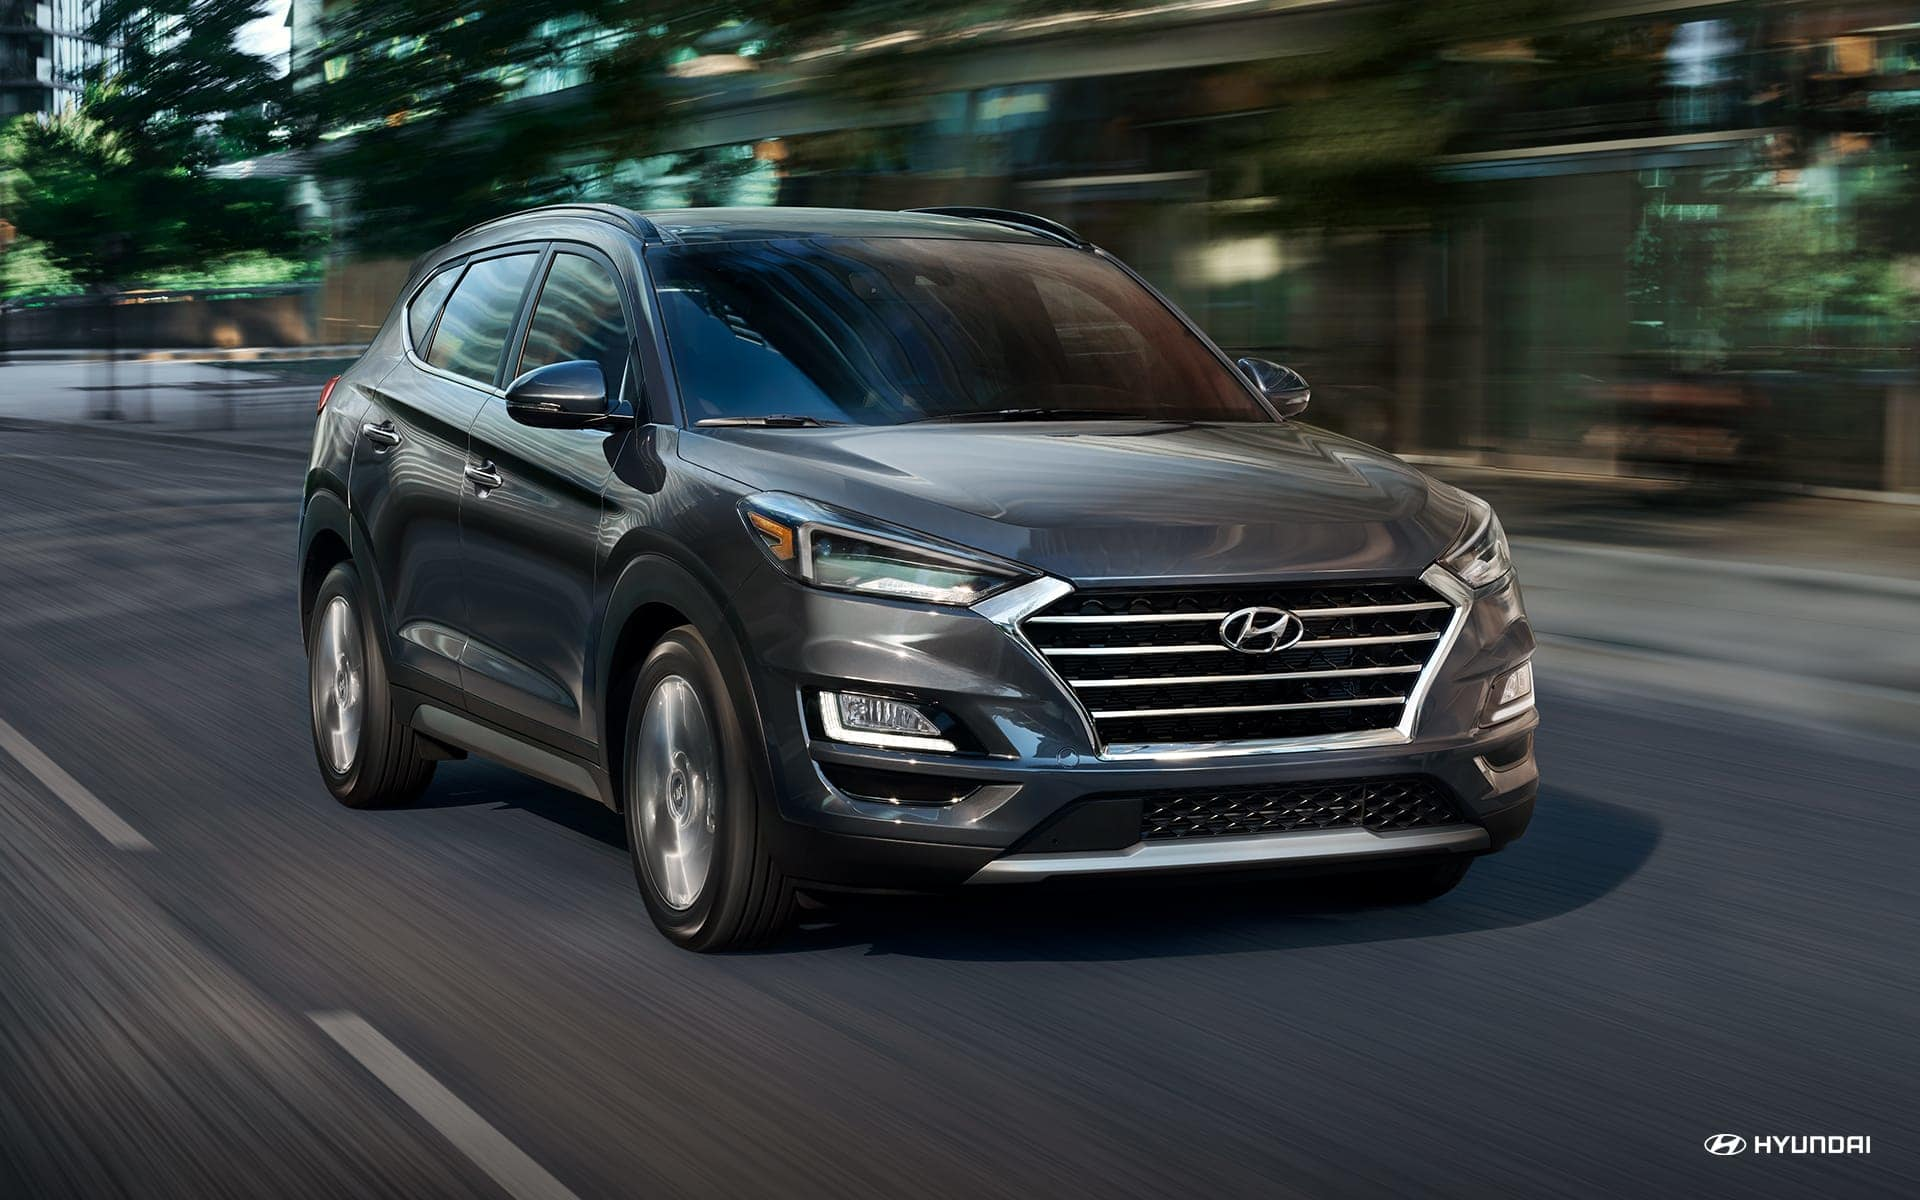 2019 Hyundai Tucson Leasing near Laurel, MD